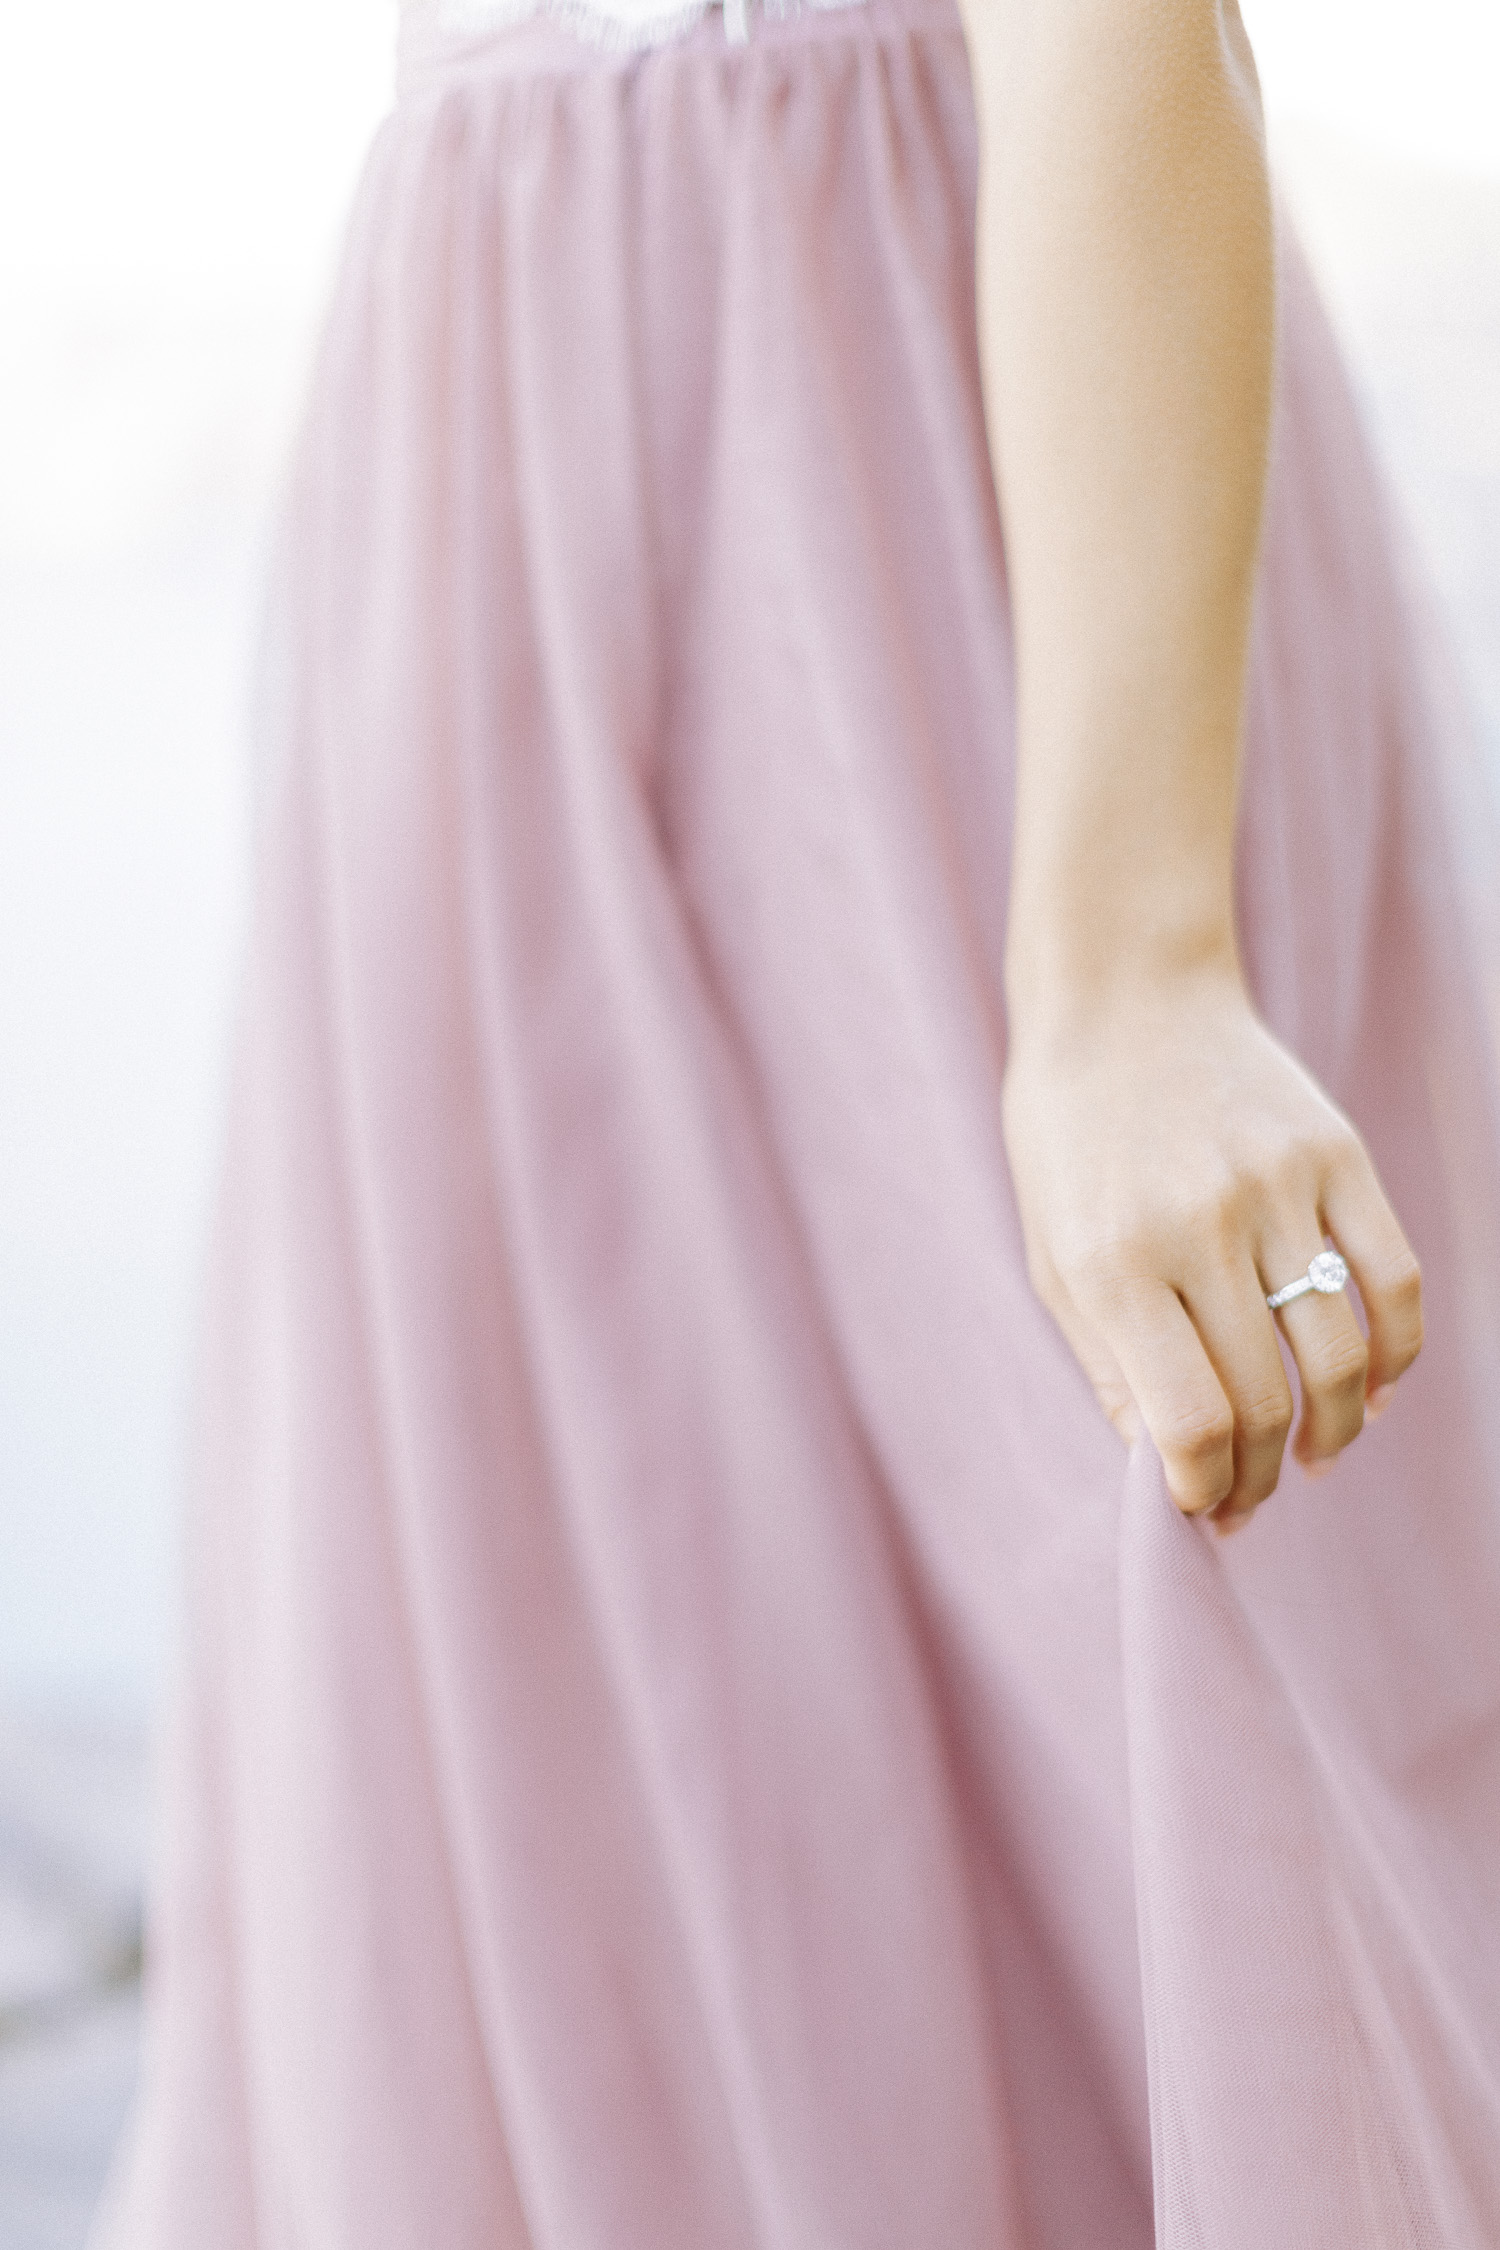 Shine bright, a huge diamond engagement ring for her